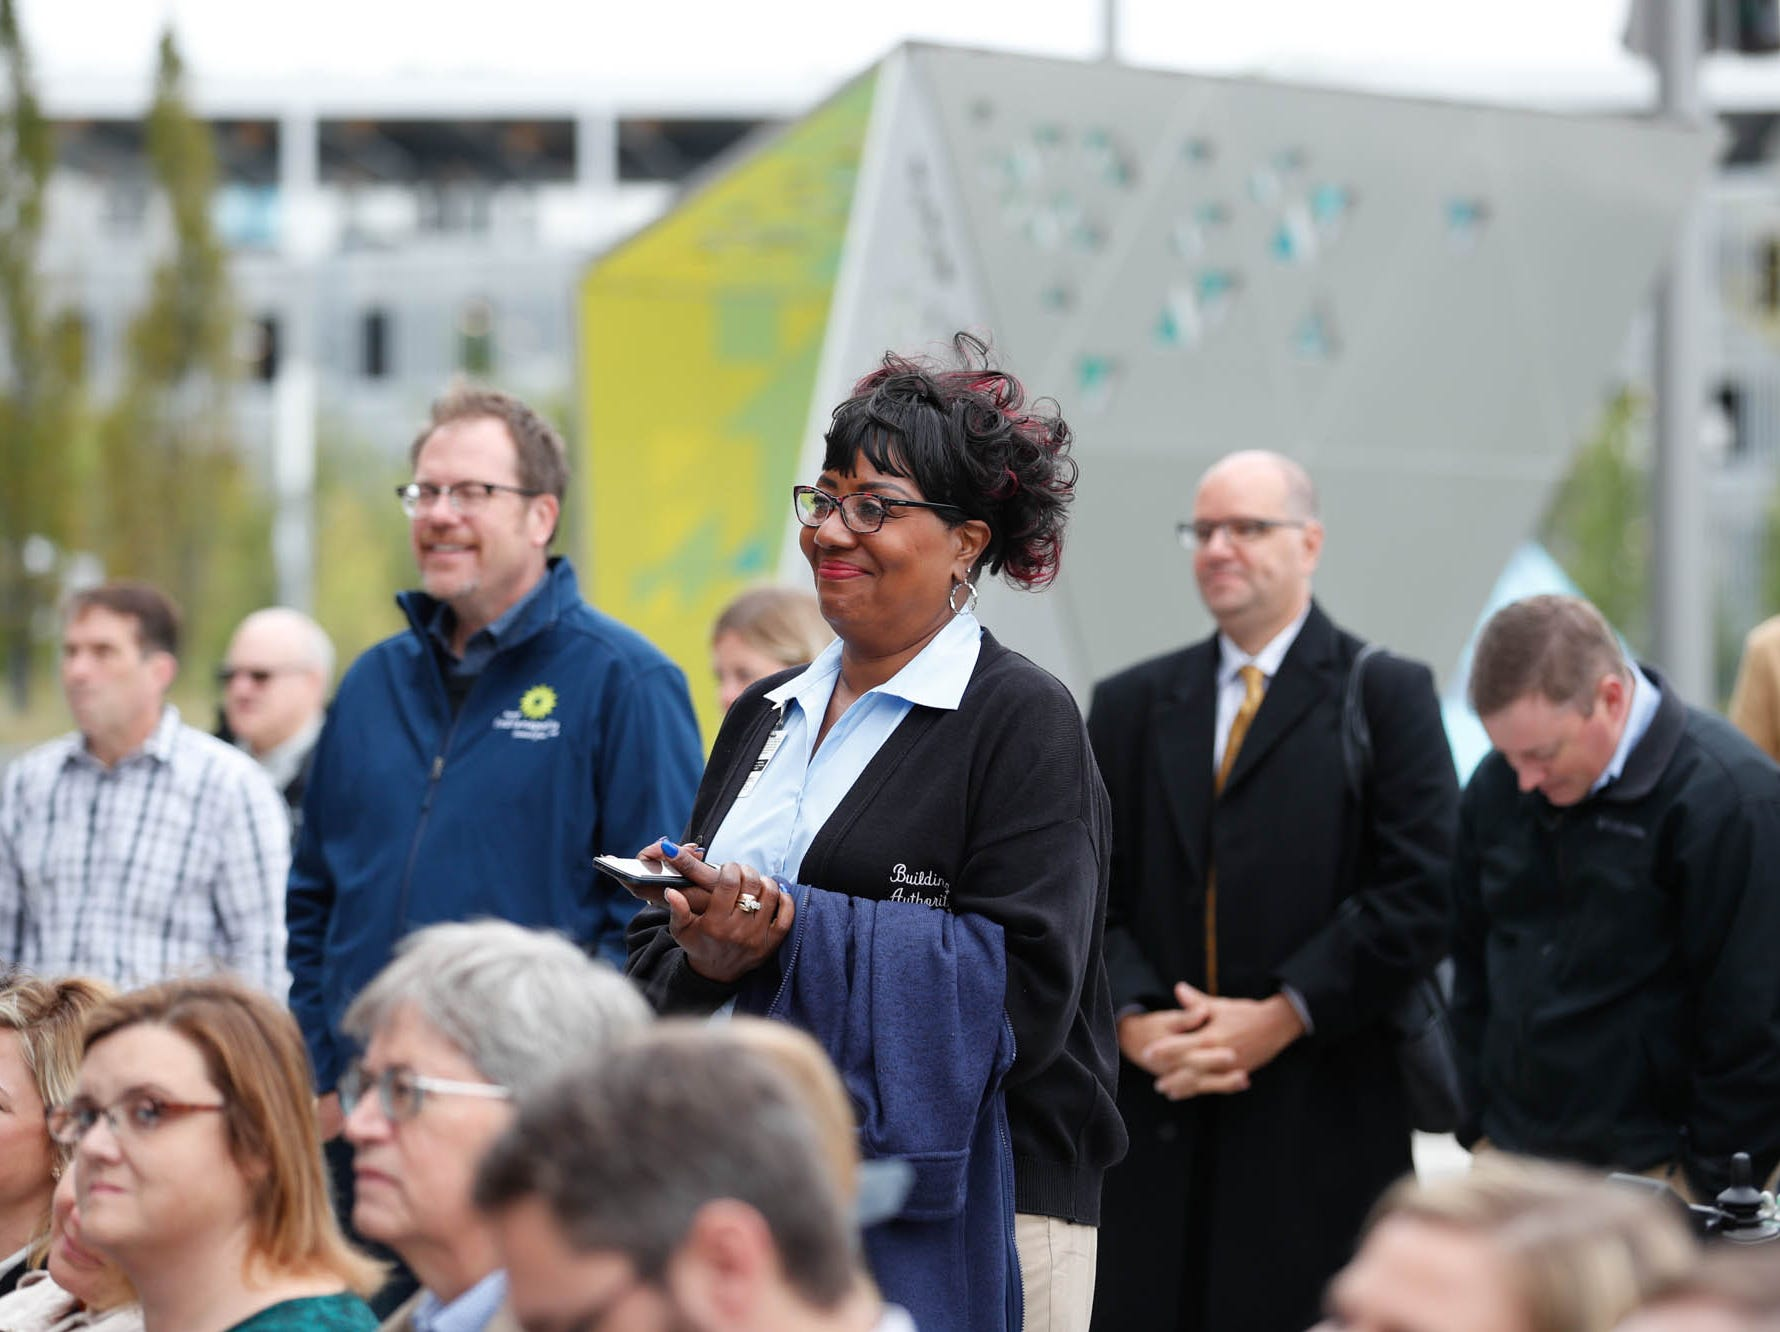 during the reopening and dedication of Richard G. Lugar Plaza at the City-County Building in Indianapolis on Thursday, Oct. 11, 2018.